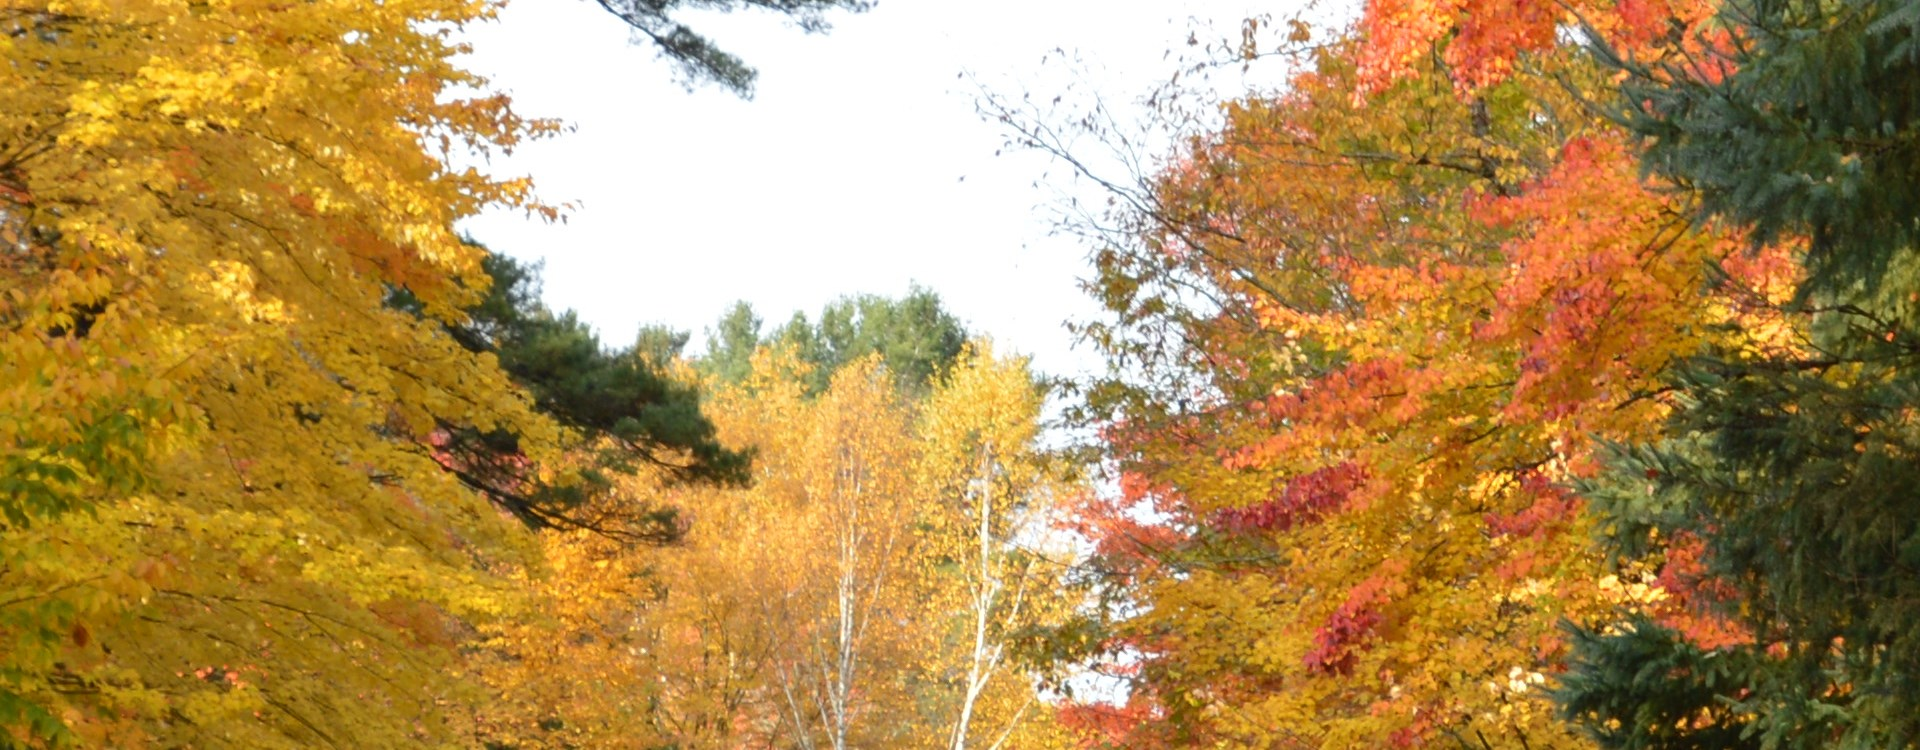 Fall trees with yellow an orange leaves